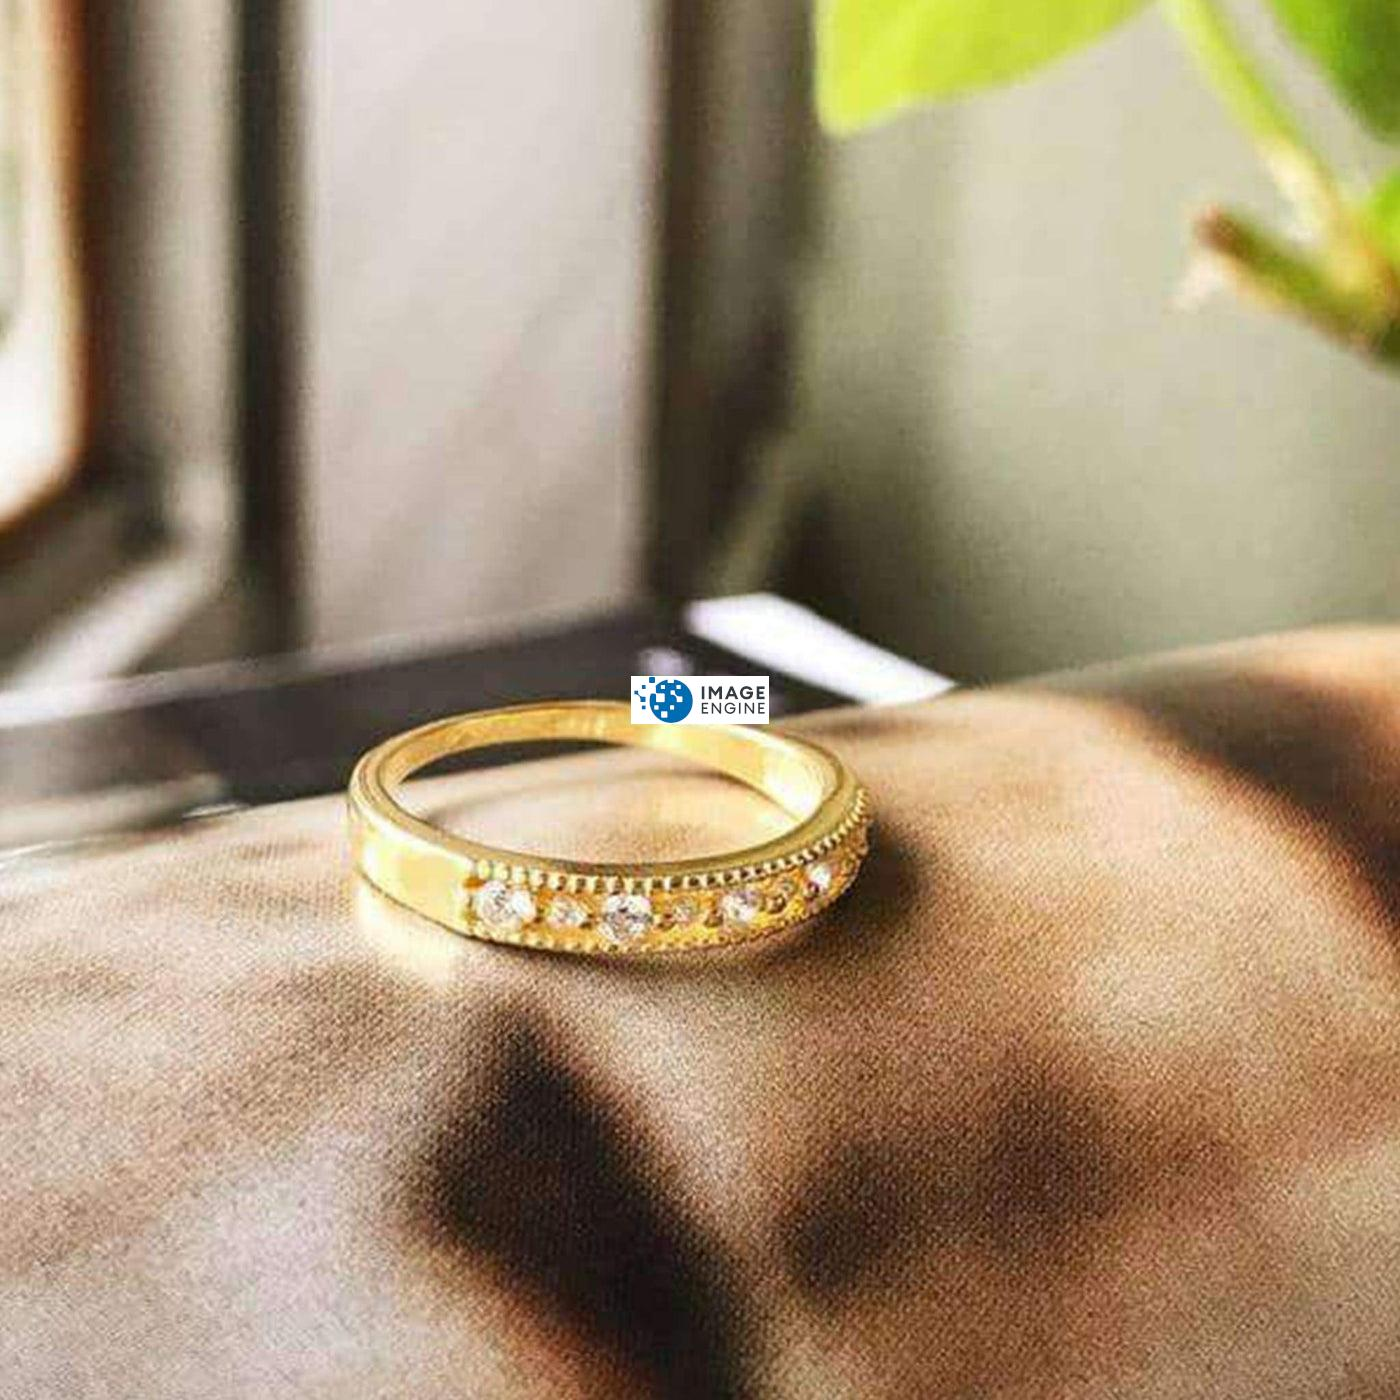 Joyce Layered Stack Ring - Showcasing Ring - 18K Yellow Gold Vermeil